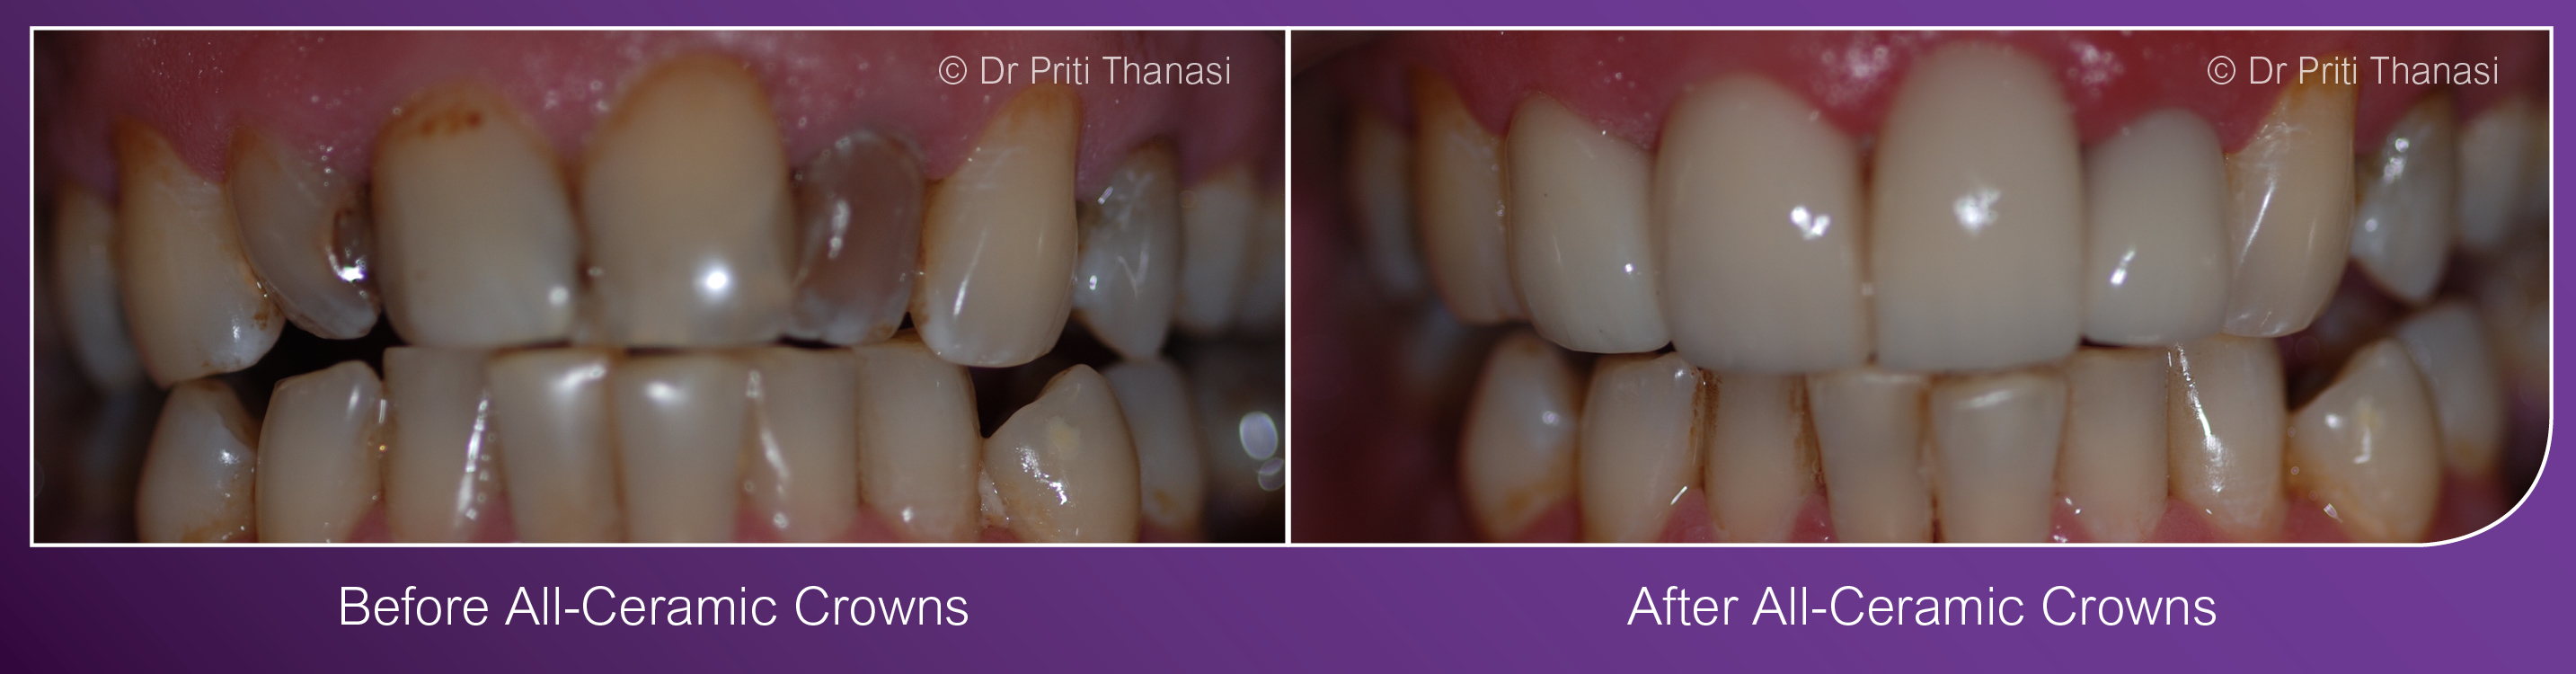 Cosmetic Dentist Dental Implants Leicester